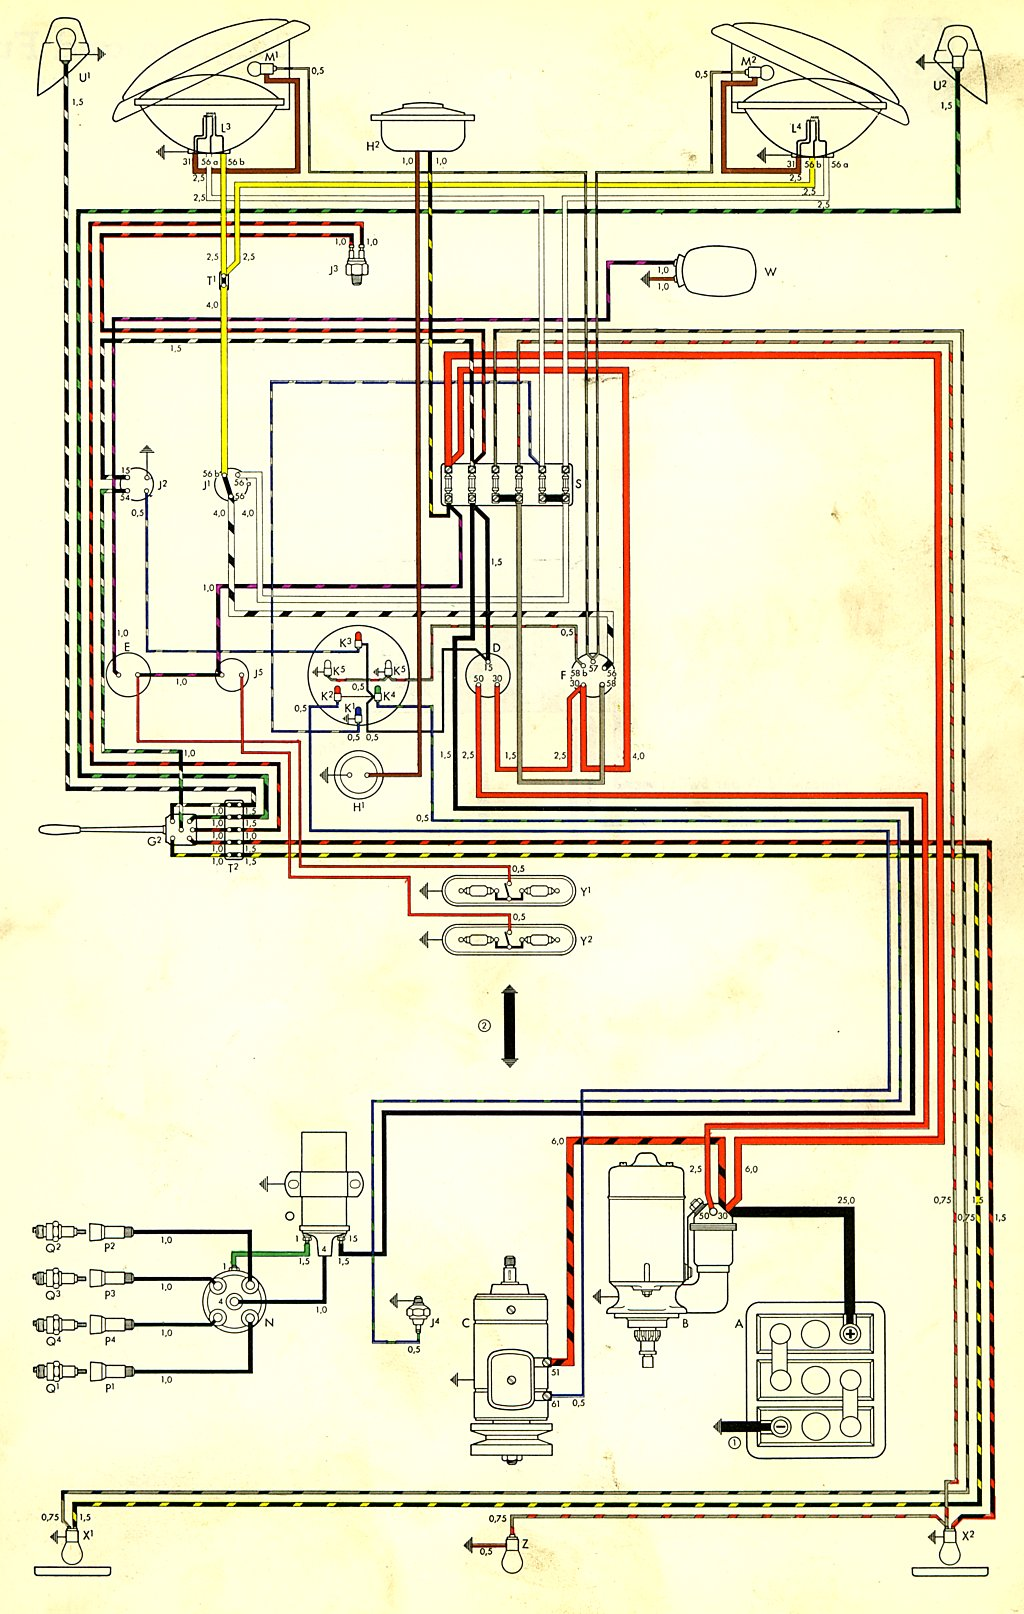 vw dune buggy alternator wiring vw 73 bus alternator wiring diagram thesamba.com :: type 2 wiring diagrams #14